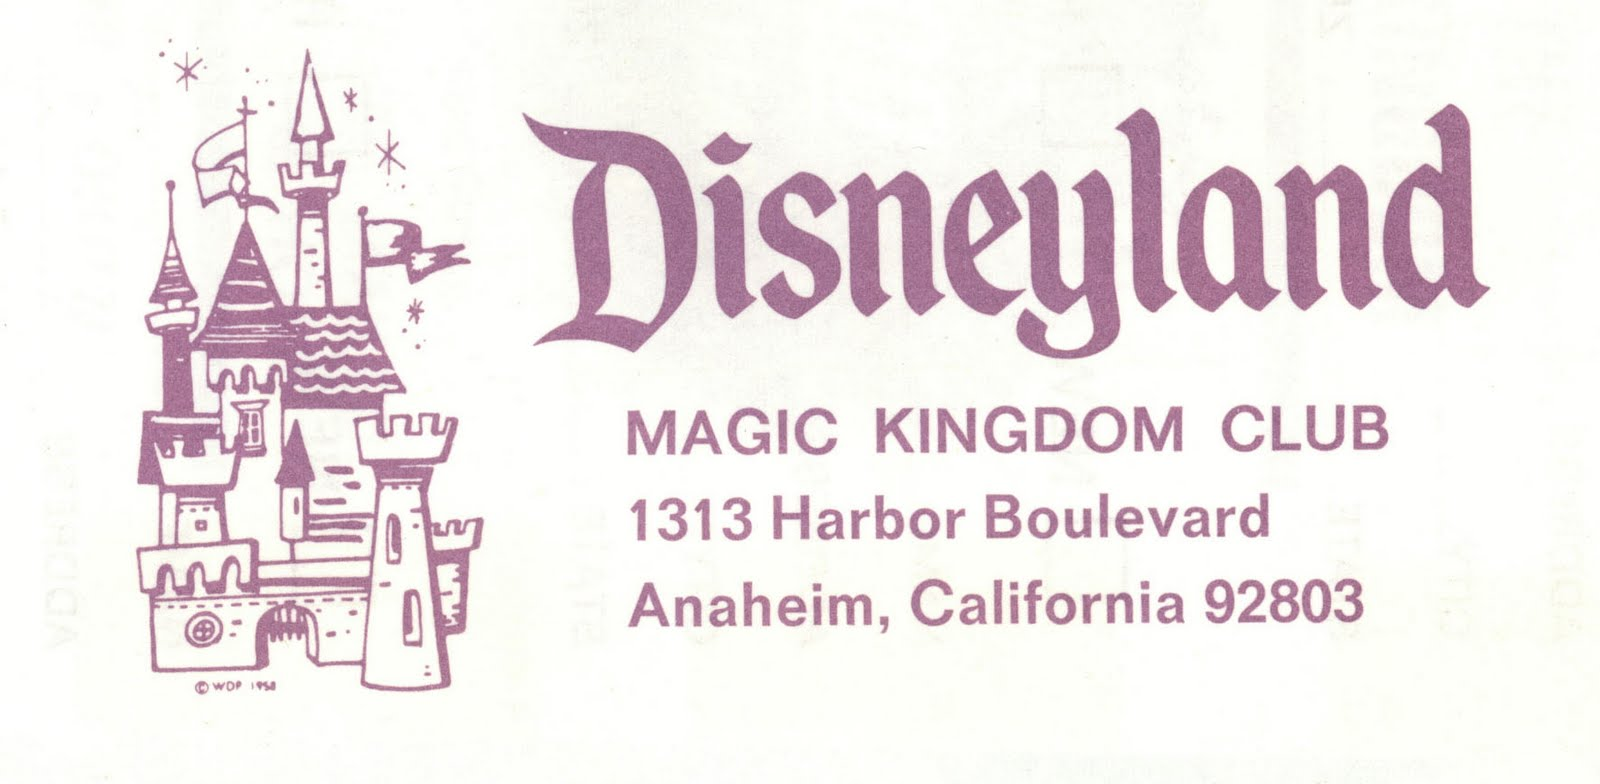 Walt chose Disney's 1313 address in honor of Mickey